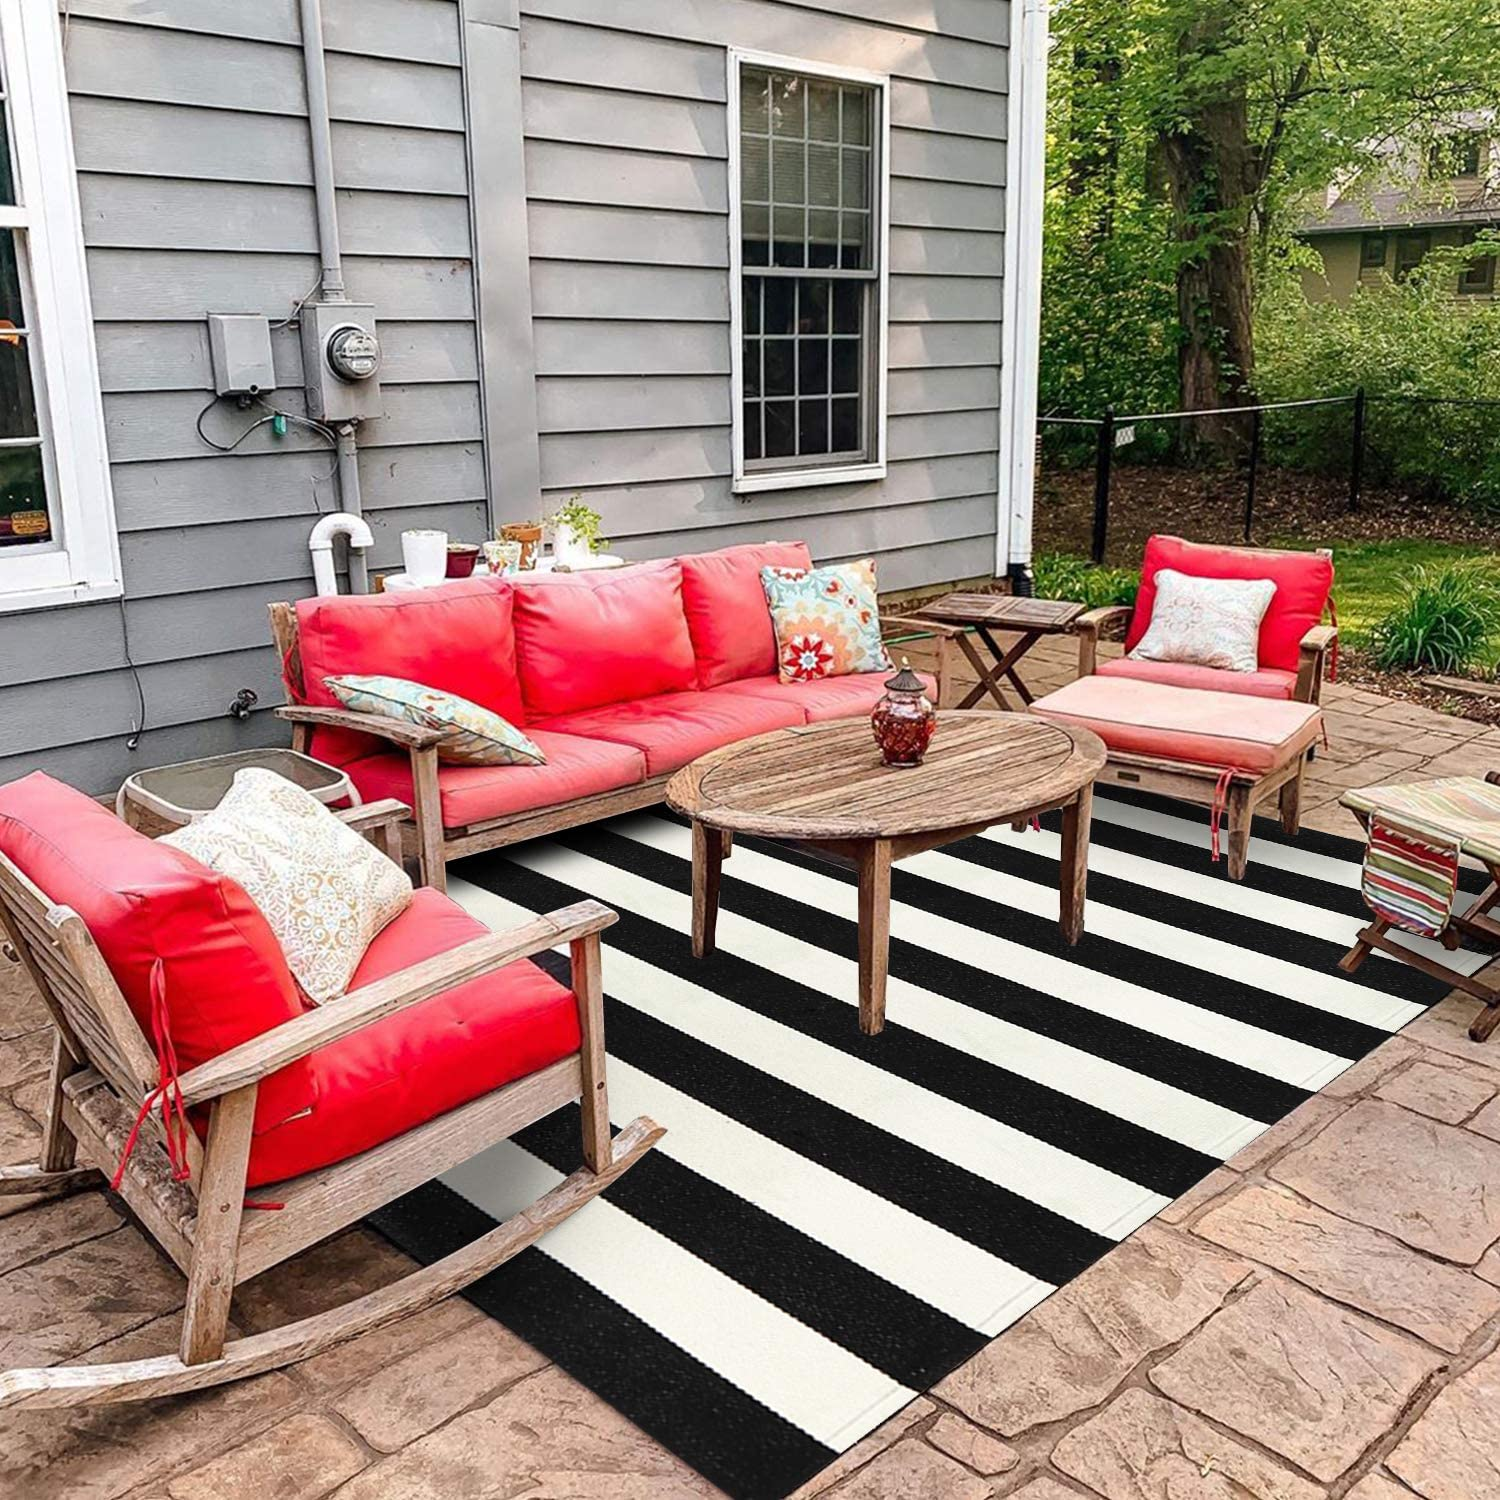 Black And White Outdoor Indoor Rug Doormat 3 X 5 Collive Cotton Woven Porch Rug Outdoor Door Mat Farmhouse Striped Rugs Runner Washable Area Rug For Front Kitchen Bathroom Bedroom Kitchen